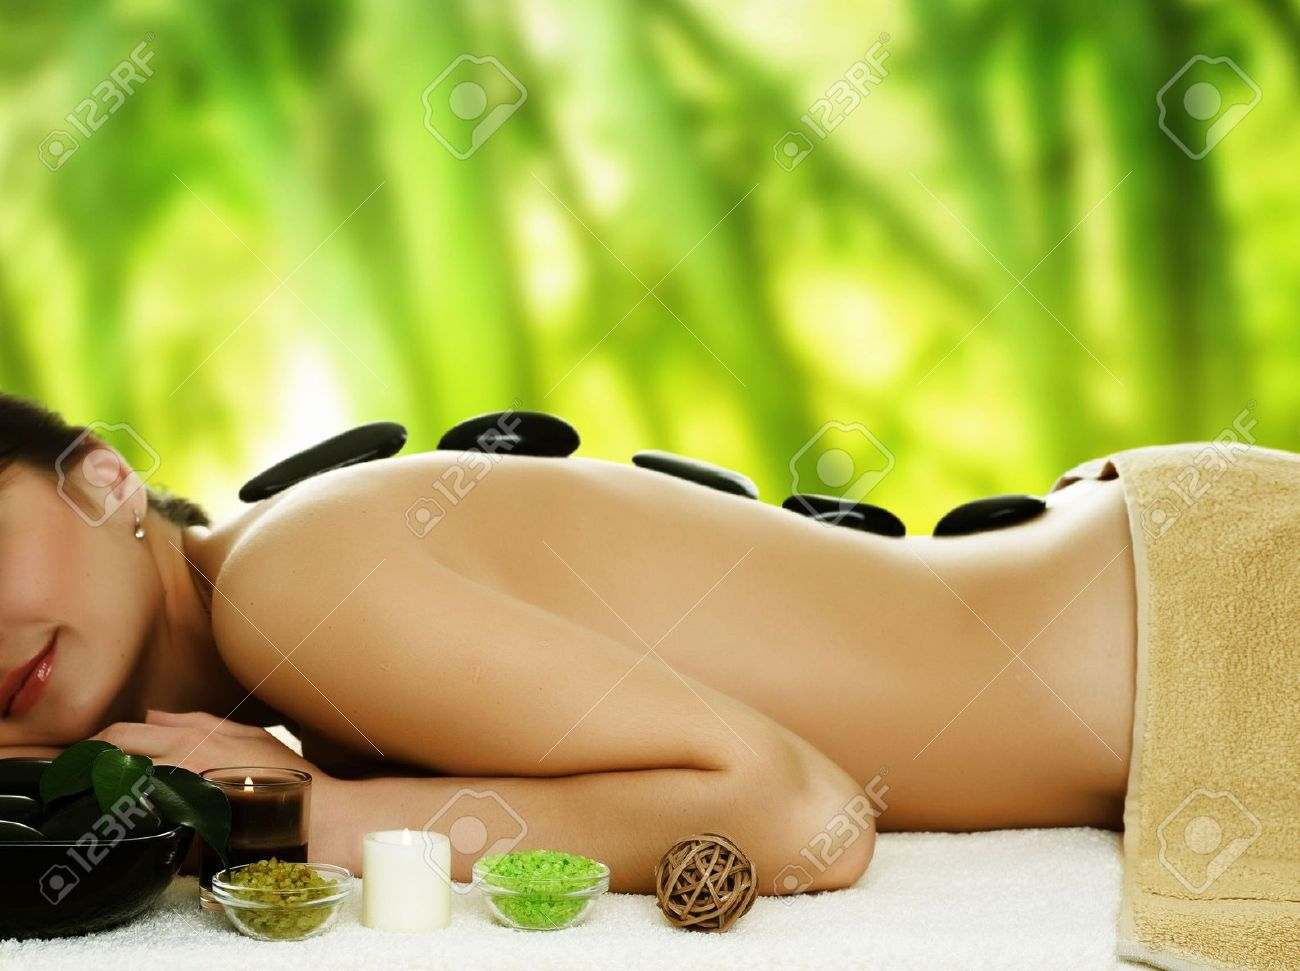 Spa and Stone therapy outdoor Stock Photo - 6683199